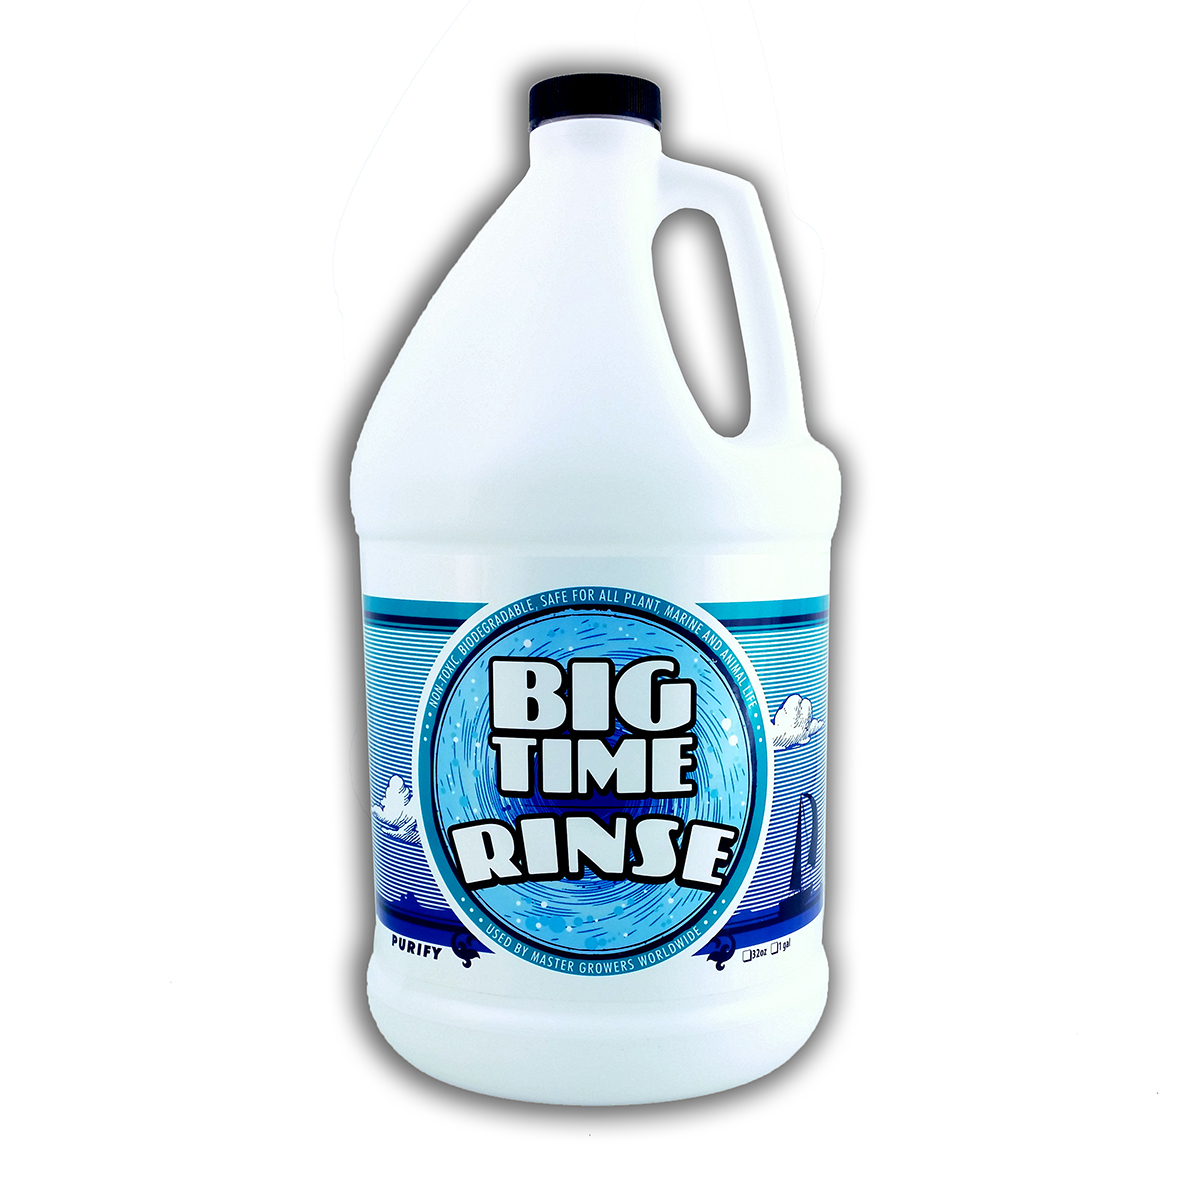 Big Time Rinse 1 Gallon